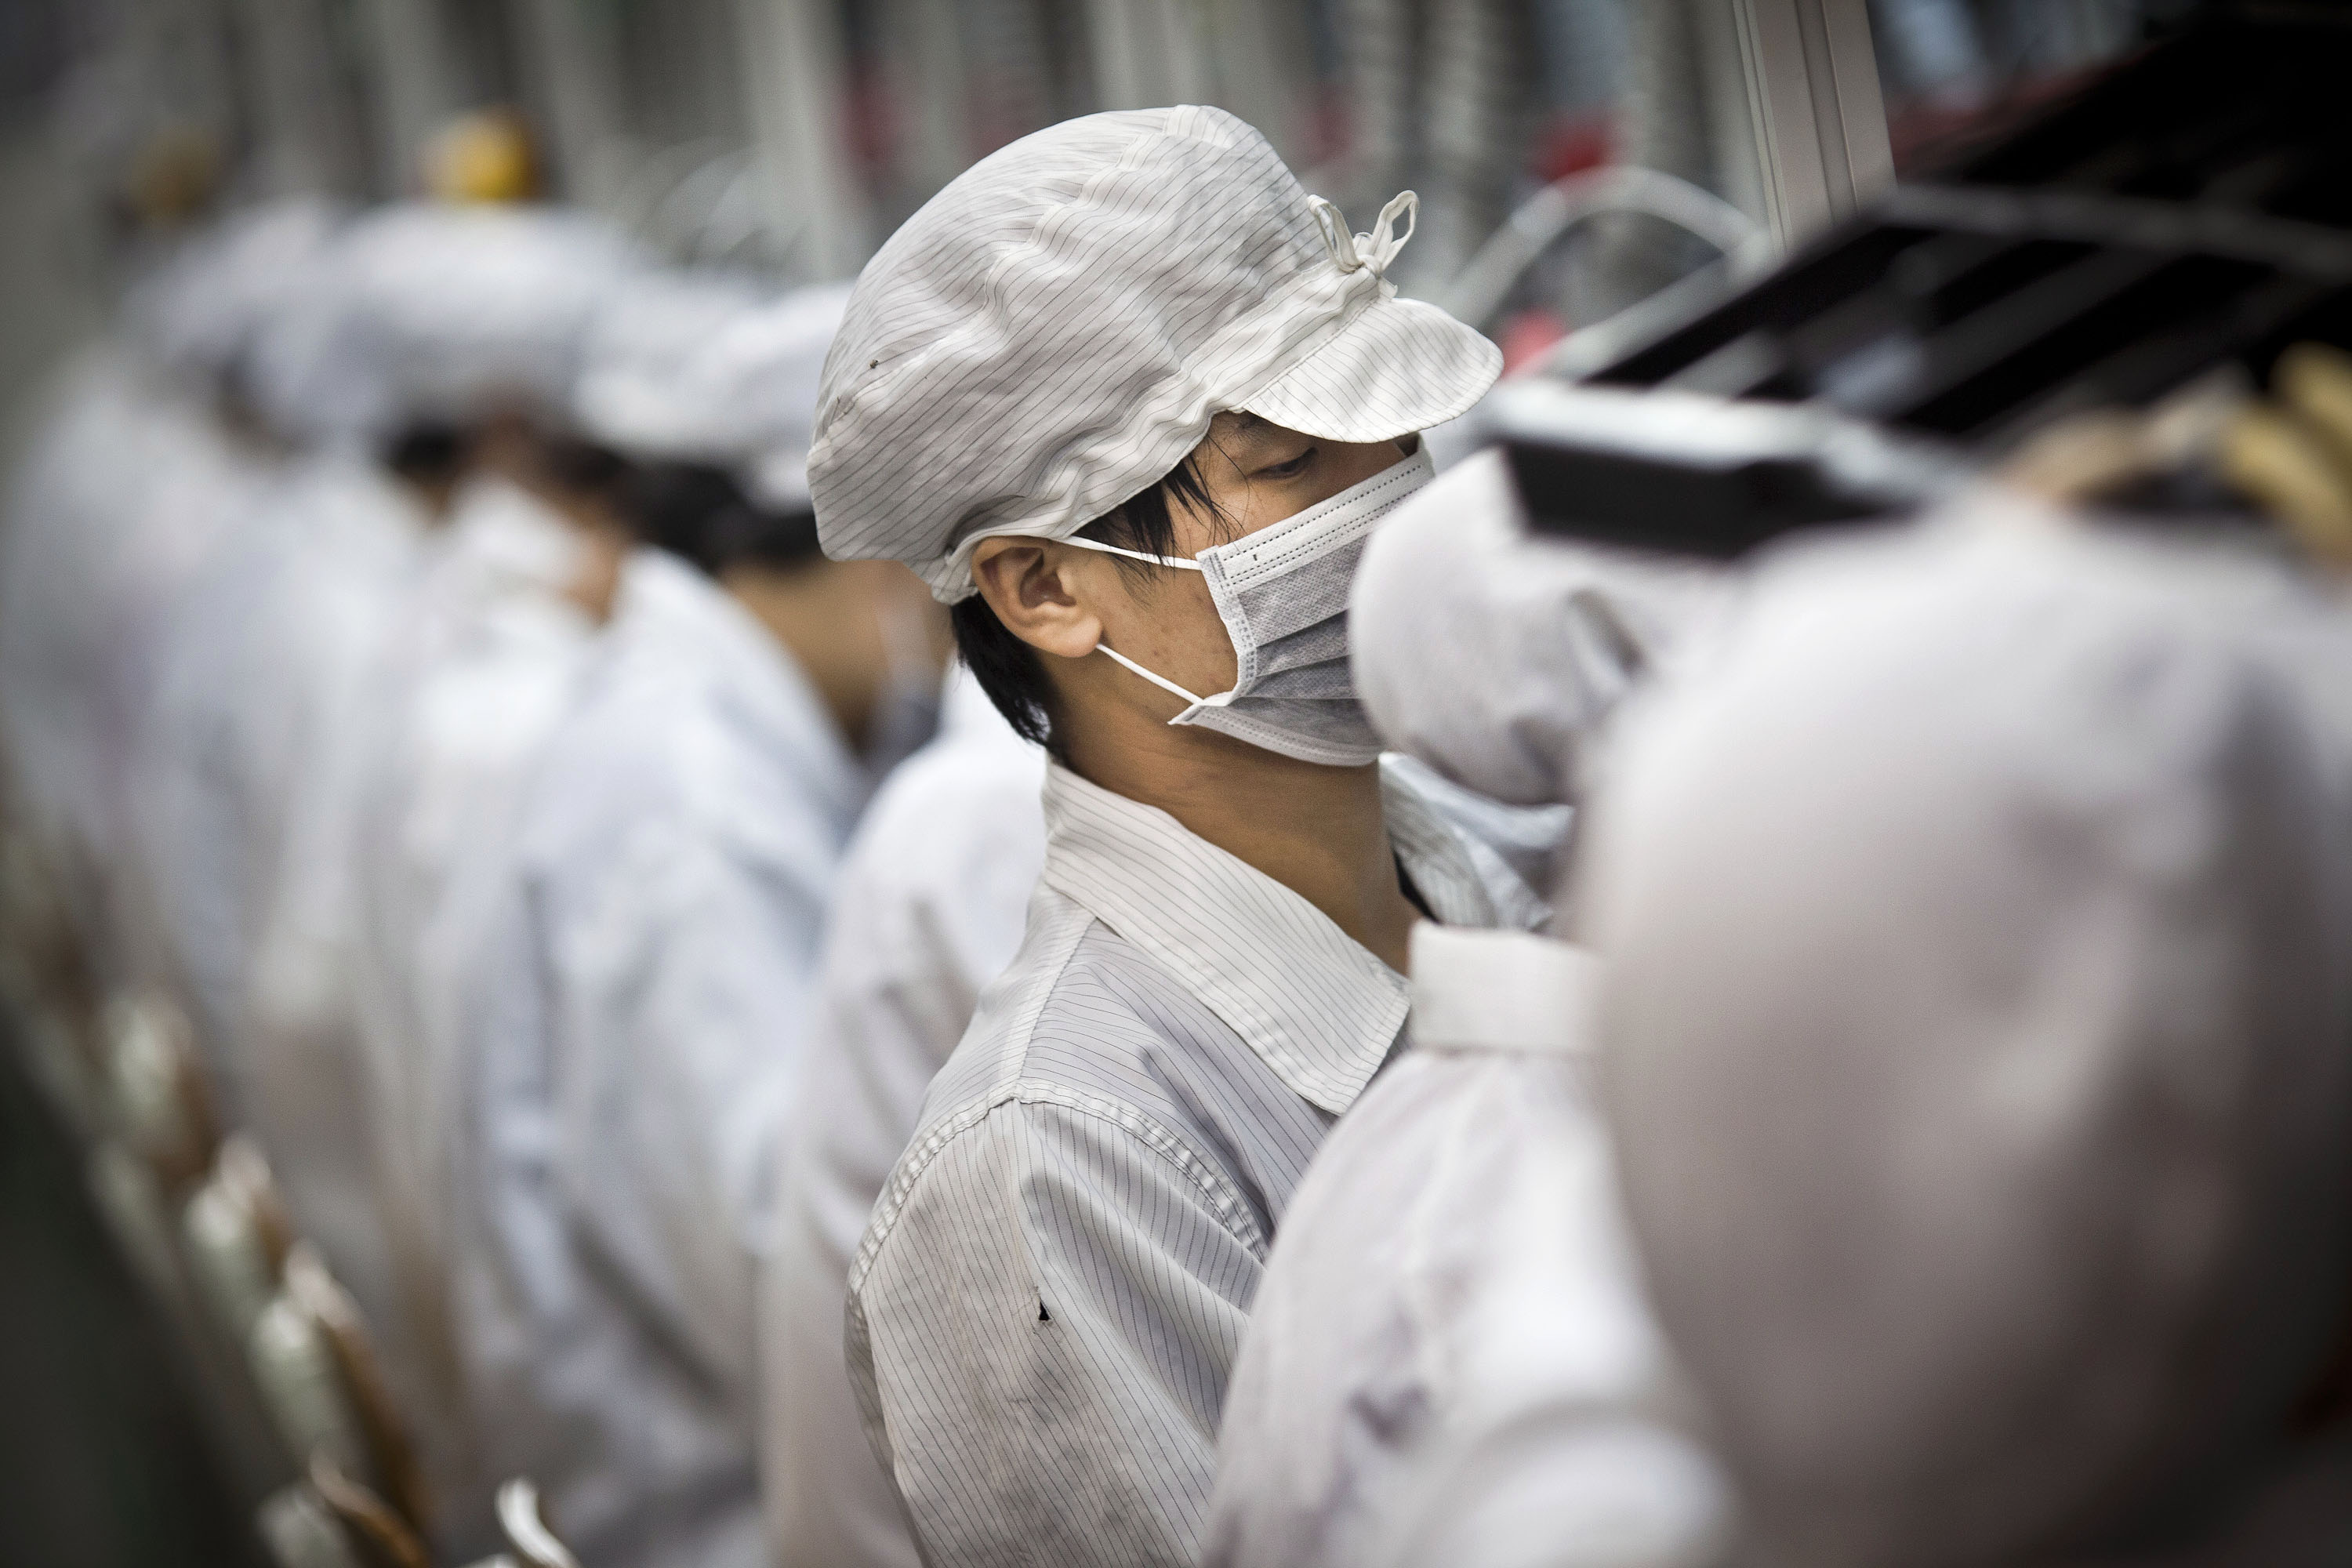 Tour Of The Foxconn Complex And Interview With CEO Terry Guo